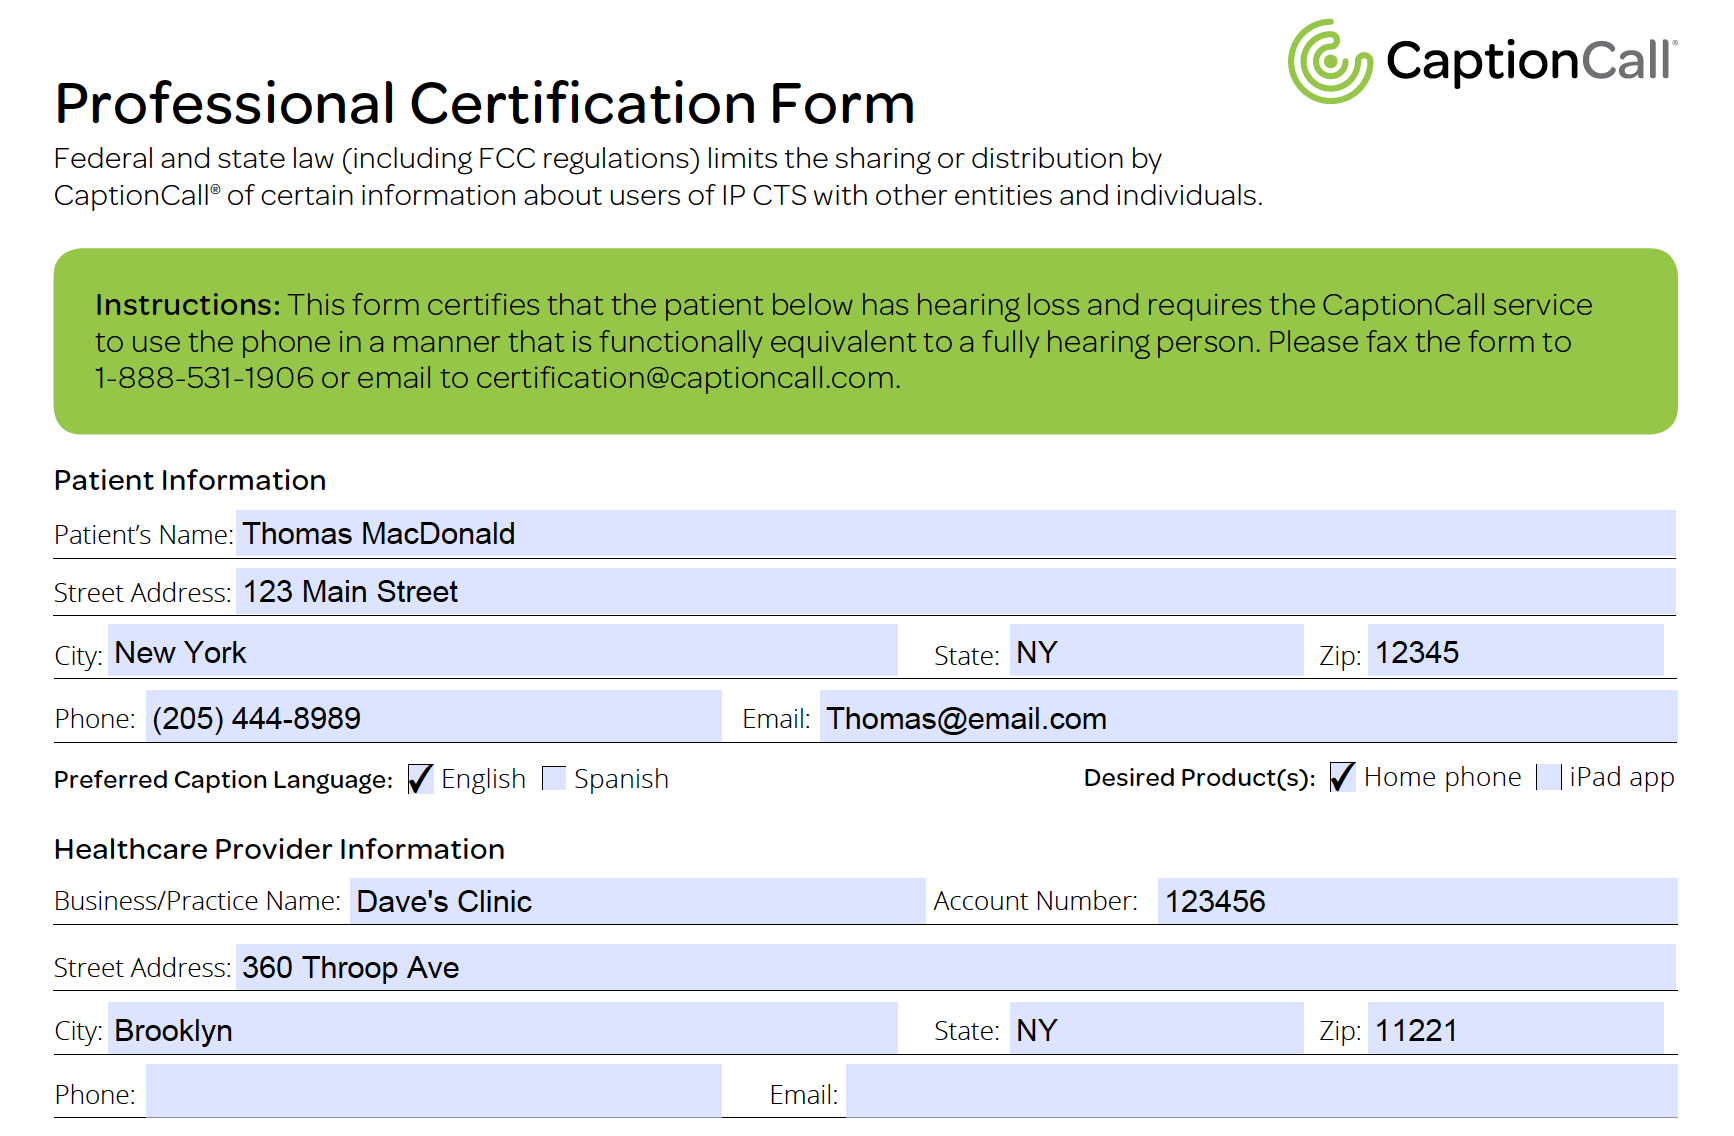 captioncall professional certification form